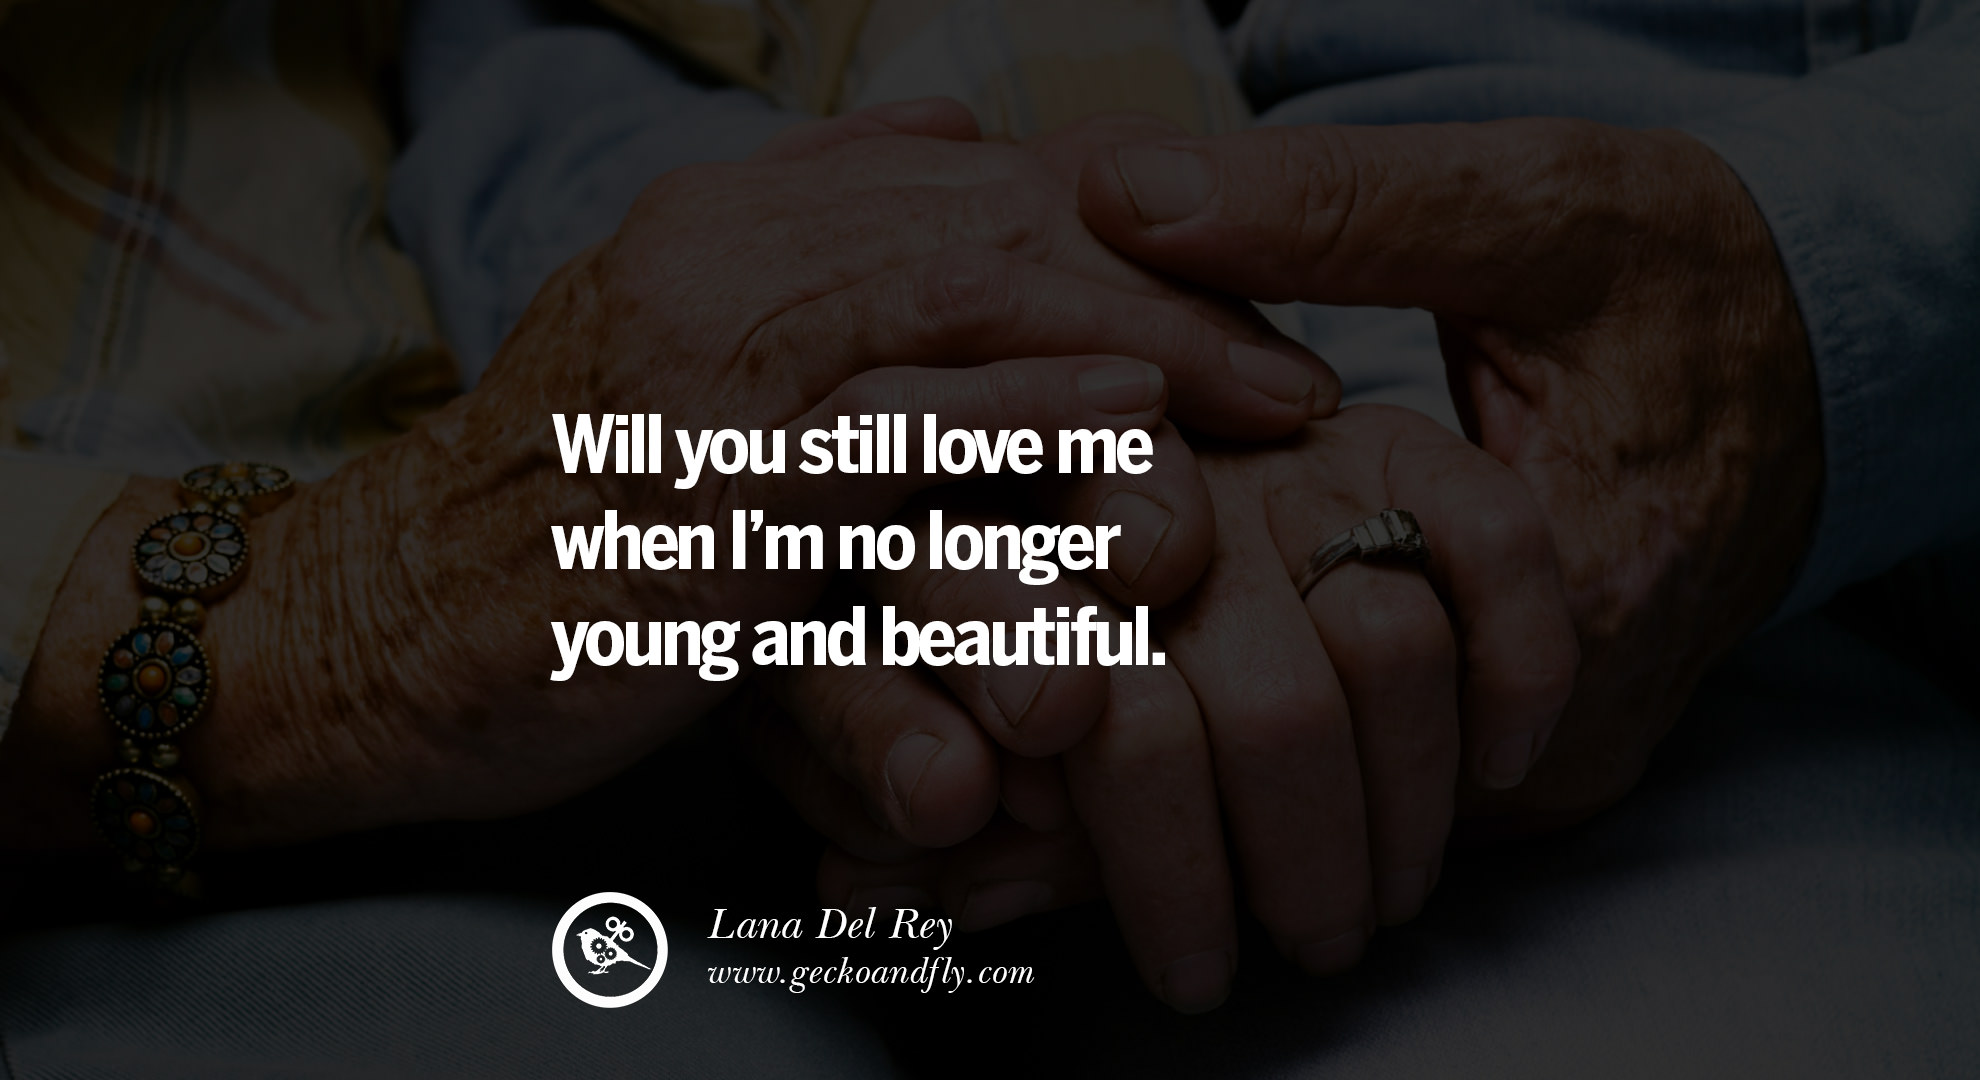 Love Quotes About Life: 40 Romantic Quotes About Love Life, Marriage And Relationships